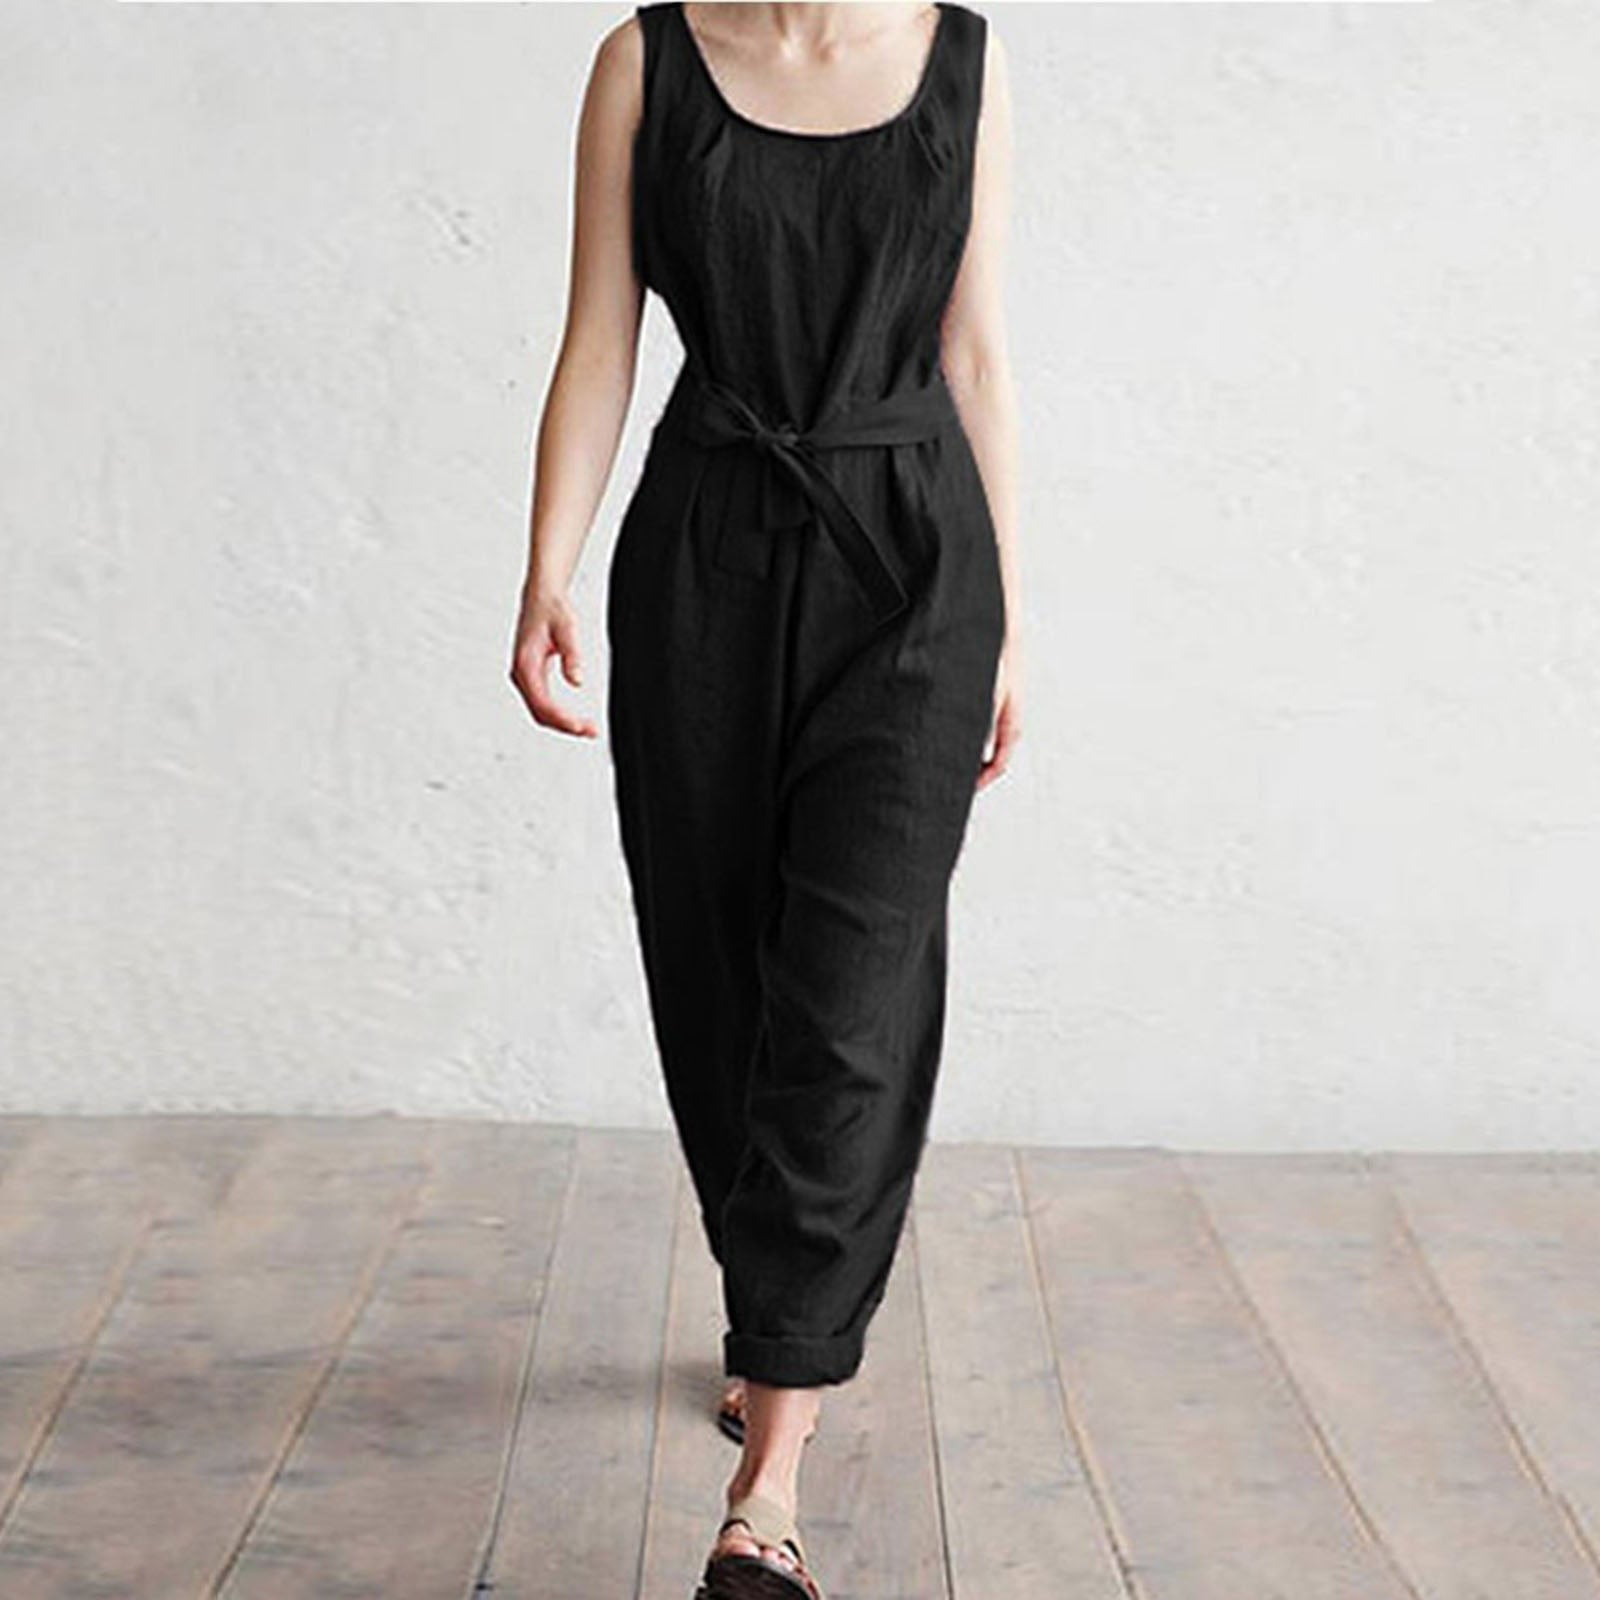 c0bfddb0265 Casual Cotton Sleeveless Pockets Jumpsuits – laddytopia